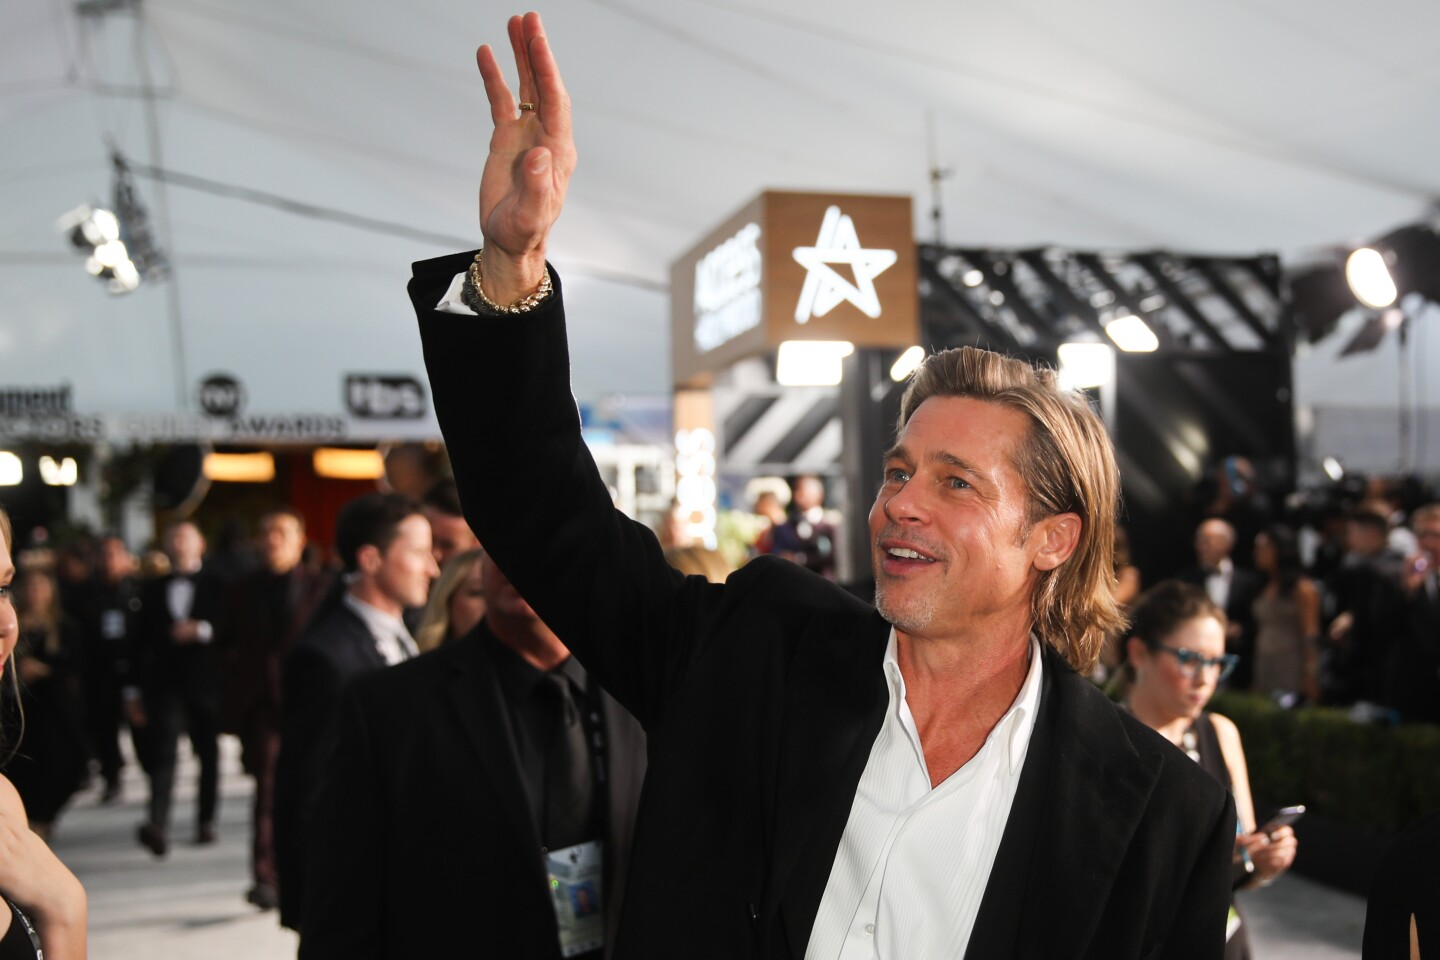 LOS ANGELES, CA - January 19, 2020: Brad Pitt arriving at the 26th Screen Actors Guild Awards at the Los Angeles Shrine Auditorium and Expo Hall on Sunday, January 19, 2020. (Allen J. Schaben / Los Angeles Times)